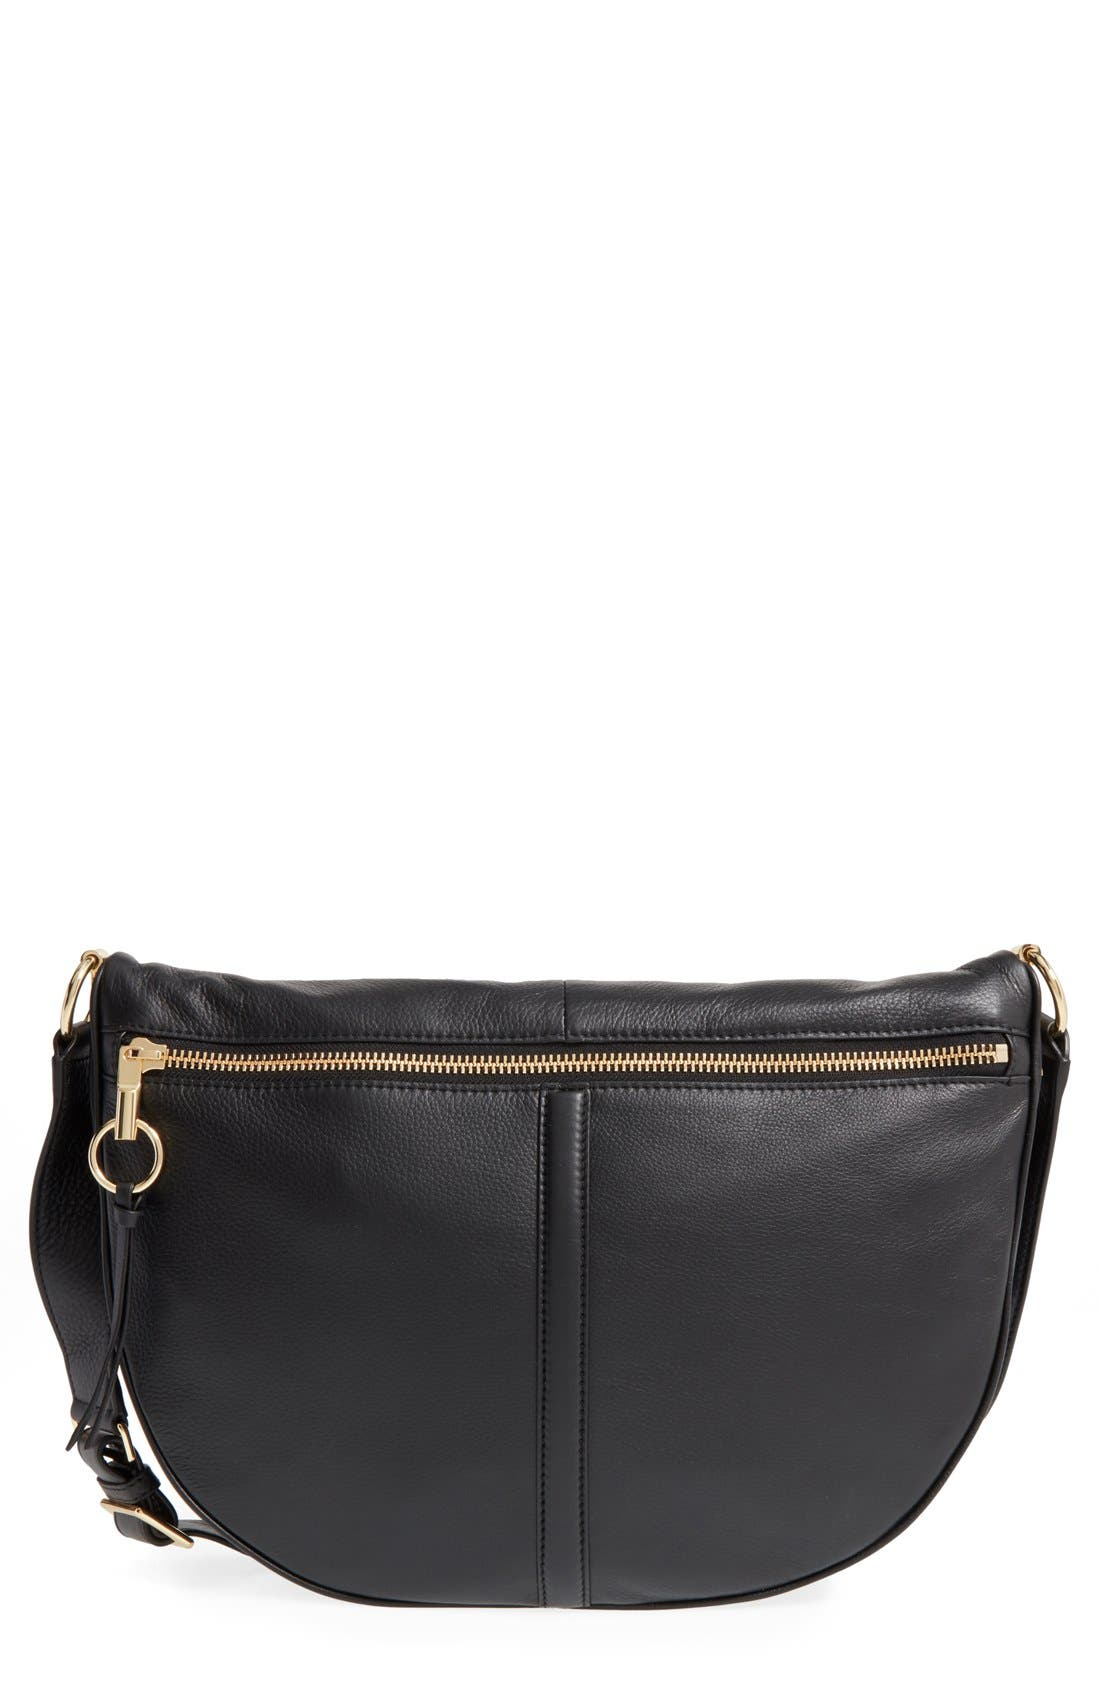 ELIZABETH AND JAMES 'Scott Moon' Leather Crossbody Bag, Main, color, 001